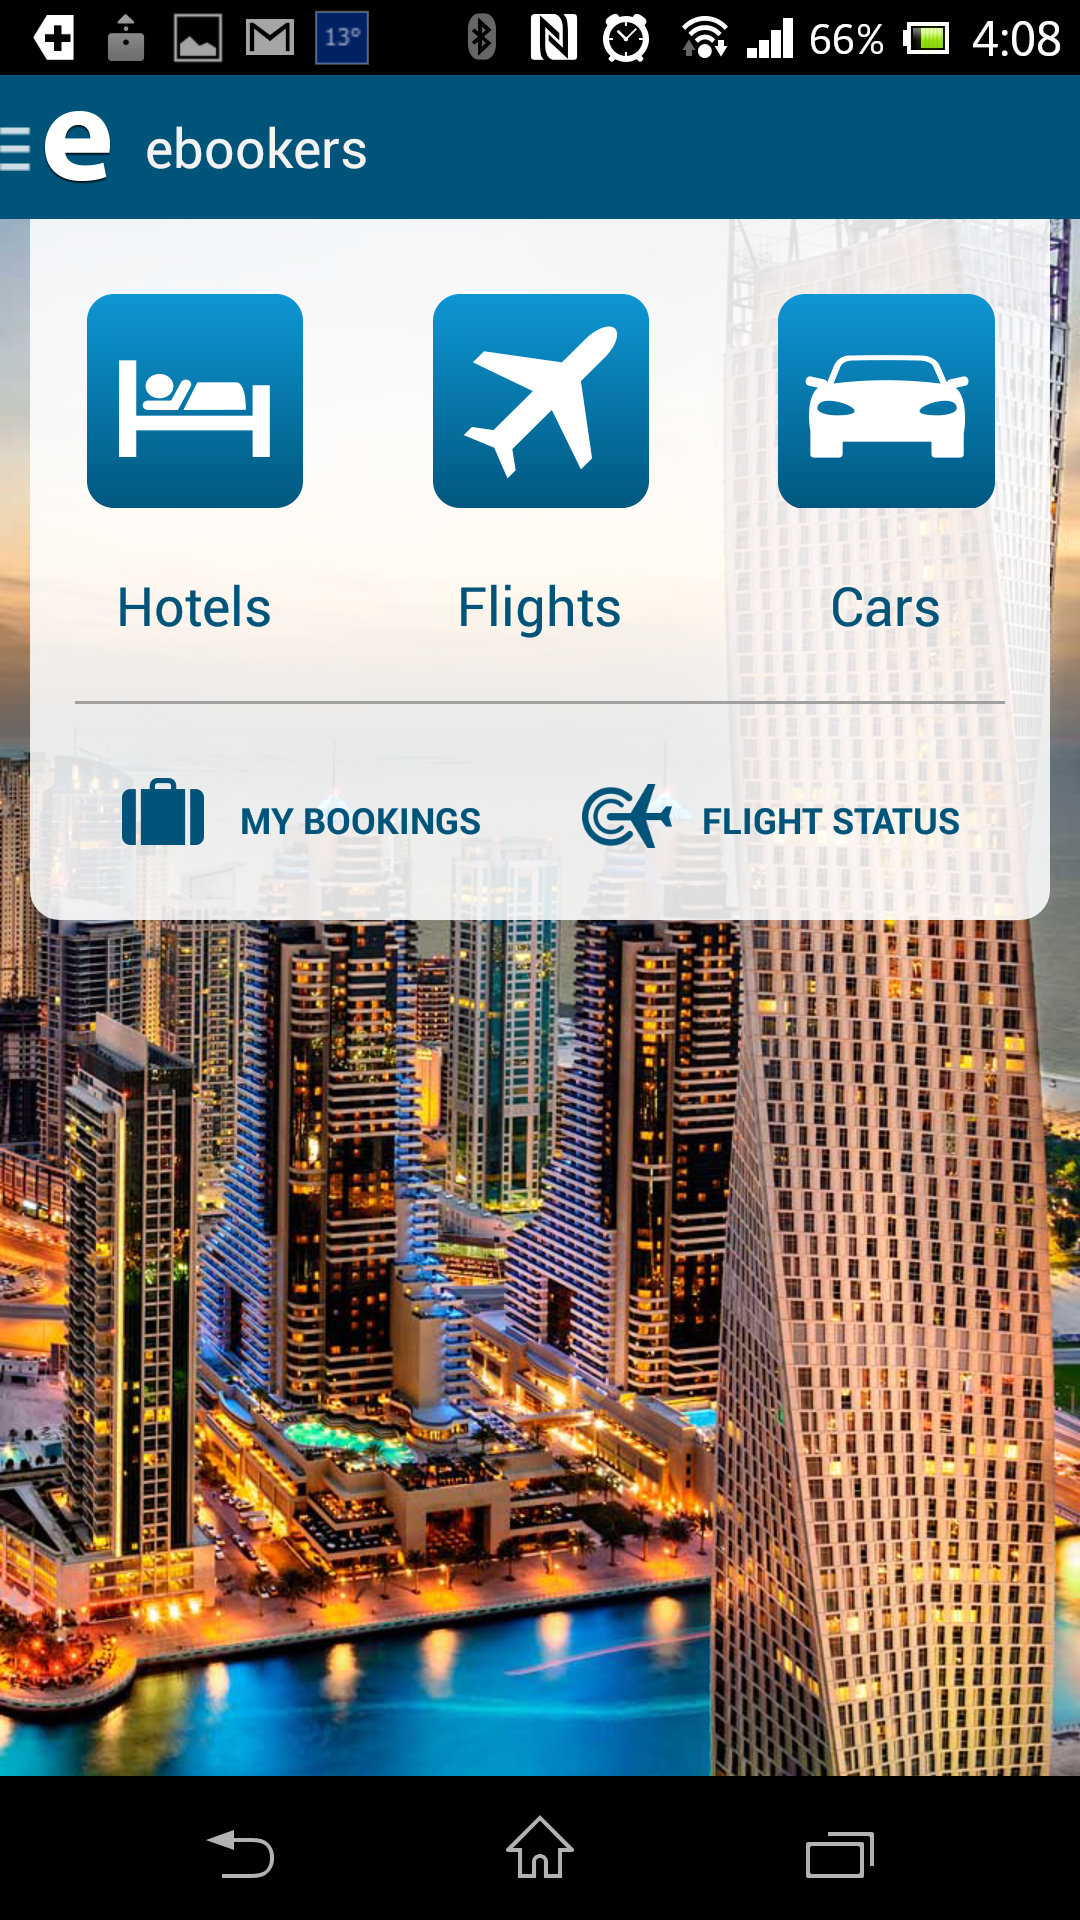 ebookers Launches All-in-one Travel App